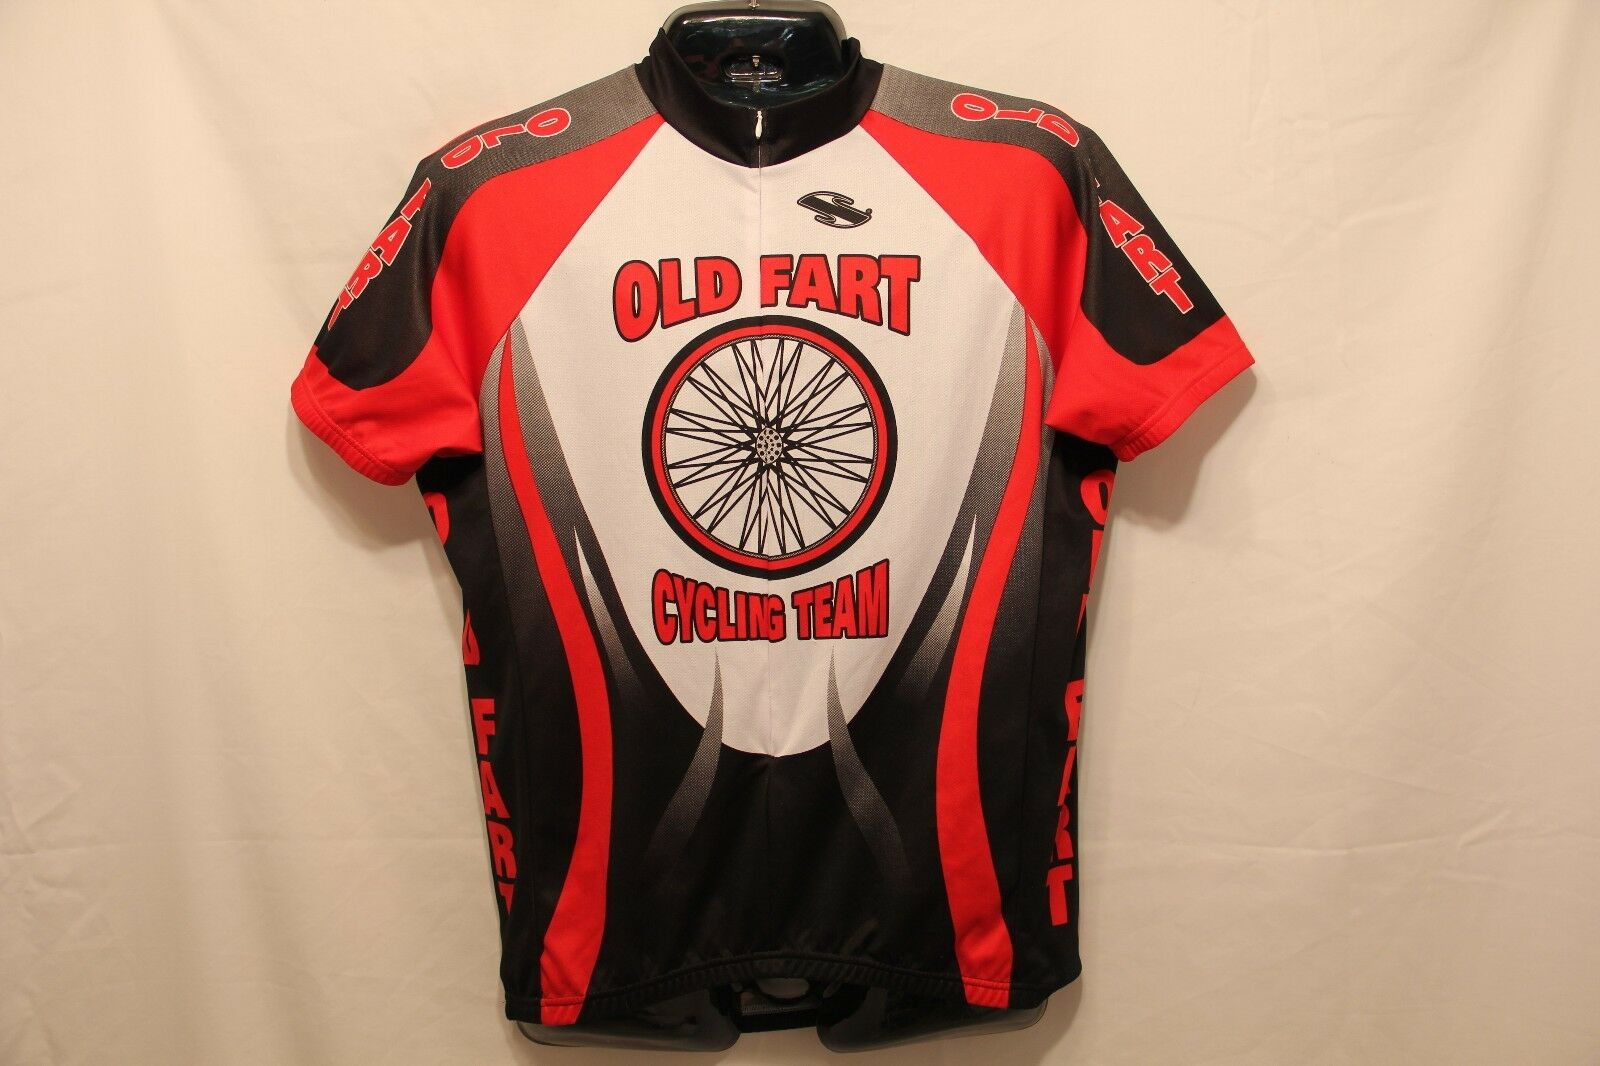 Old Fart Cycling Team Shirt Short Sleeve Jersey Adult  Med  find your favorite here